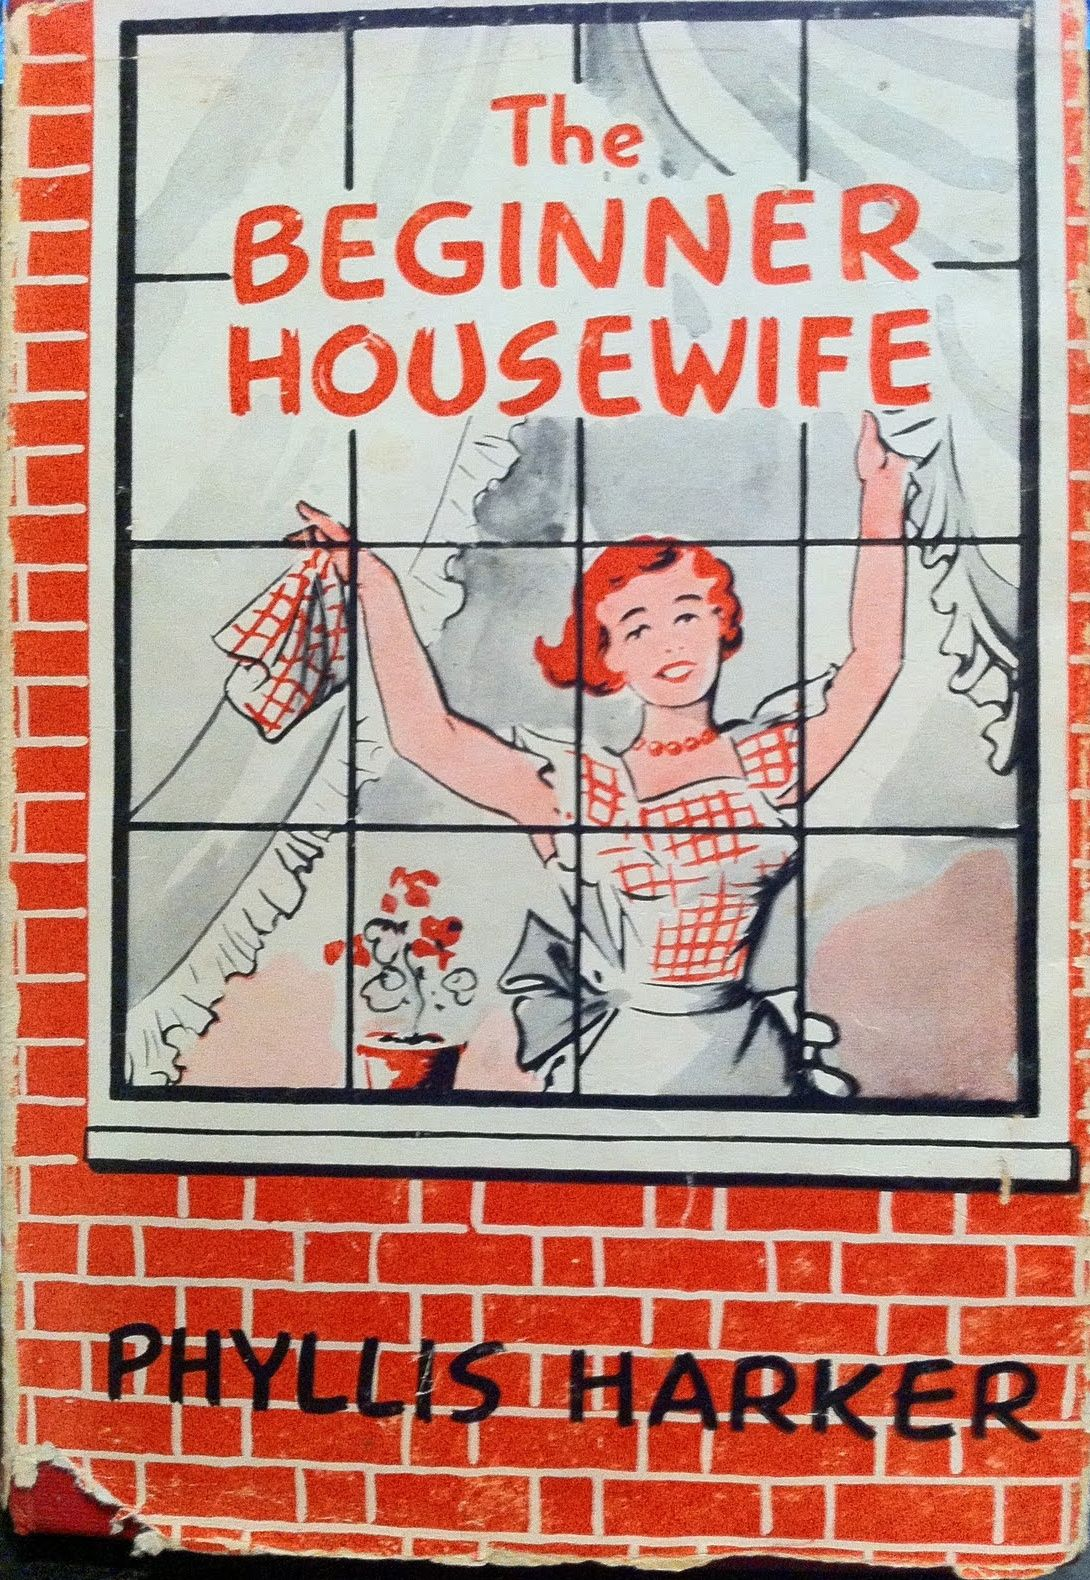 The Beginner Housewife by Phyllis Harker, 1956 Check out the sample schedule of how a new housewife might fit all of the day's chores into her schedule (not for the faint of heart).